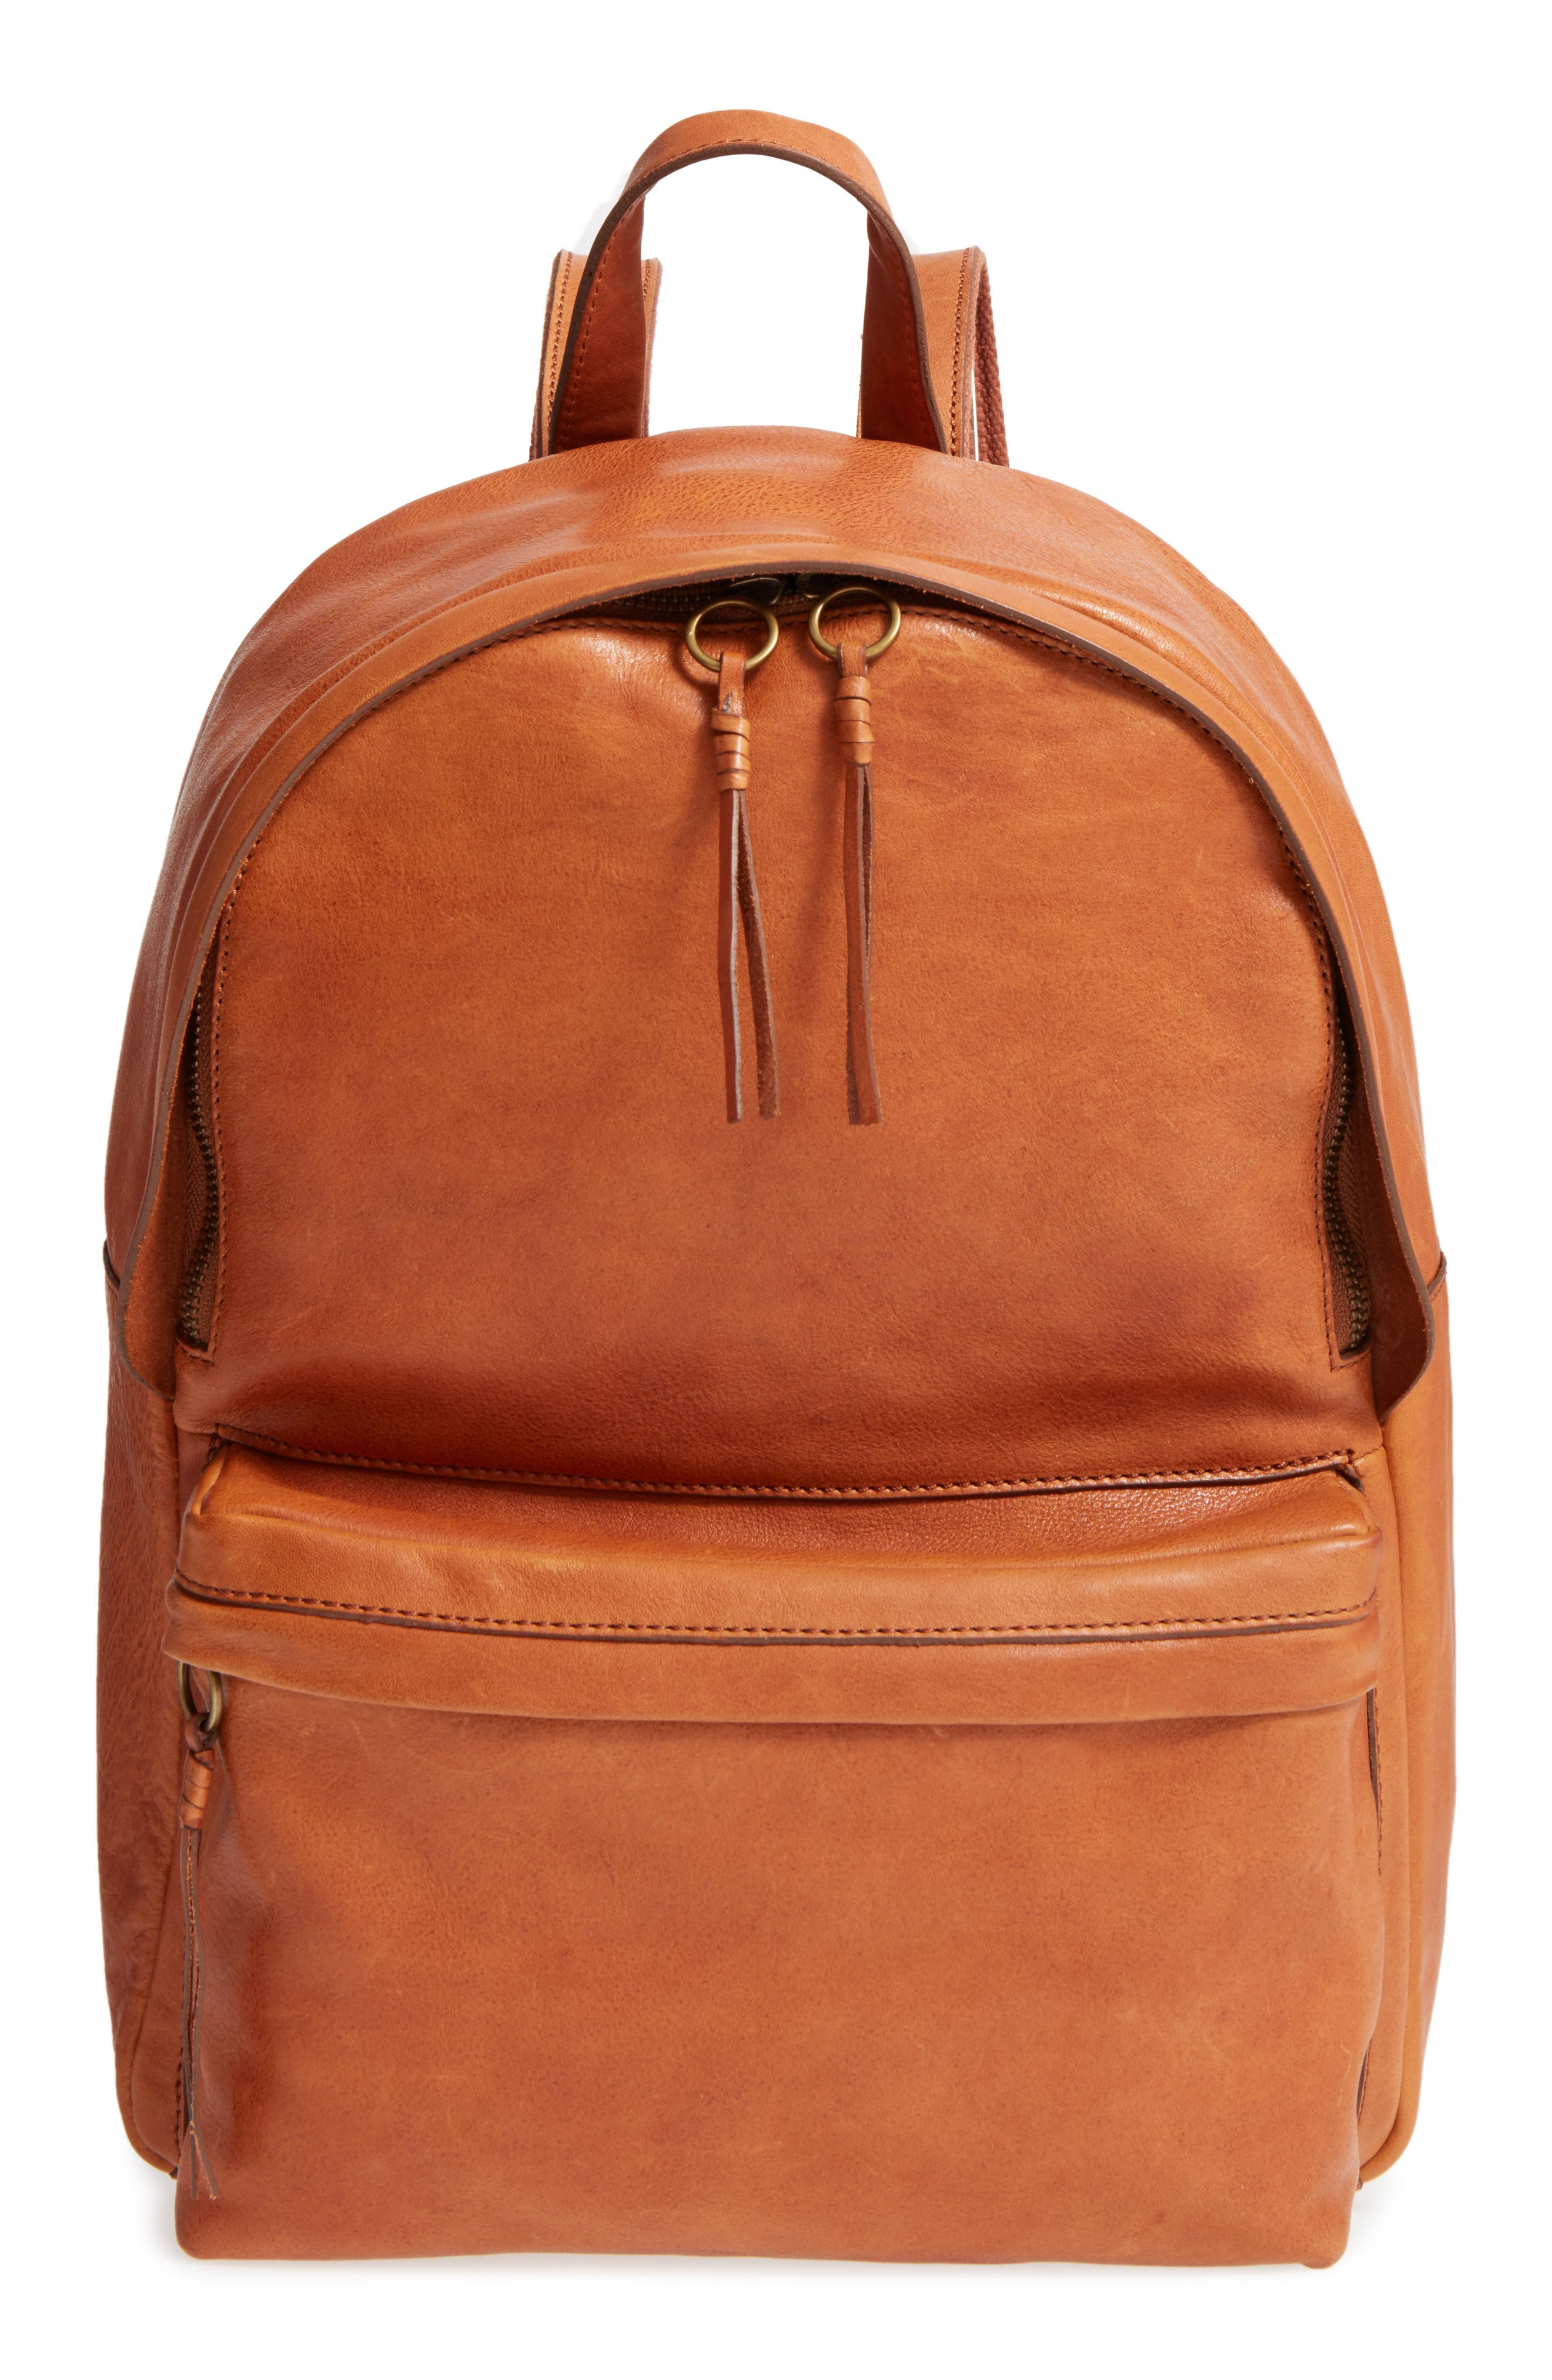 Madewell Lorimer Leather Backpack | Nordstrom